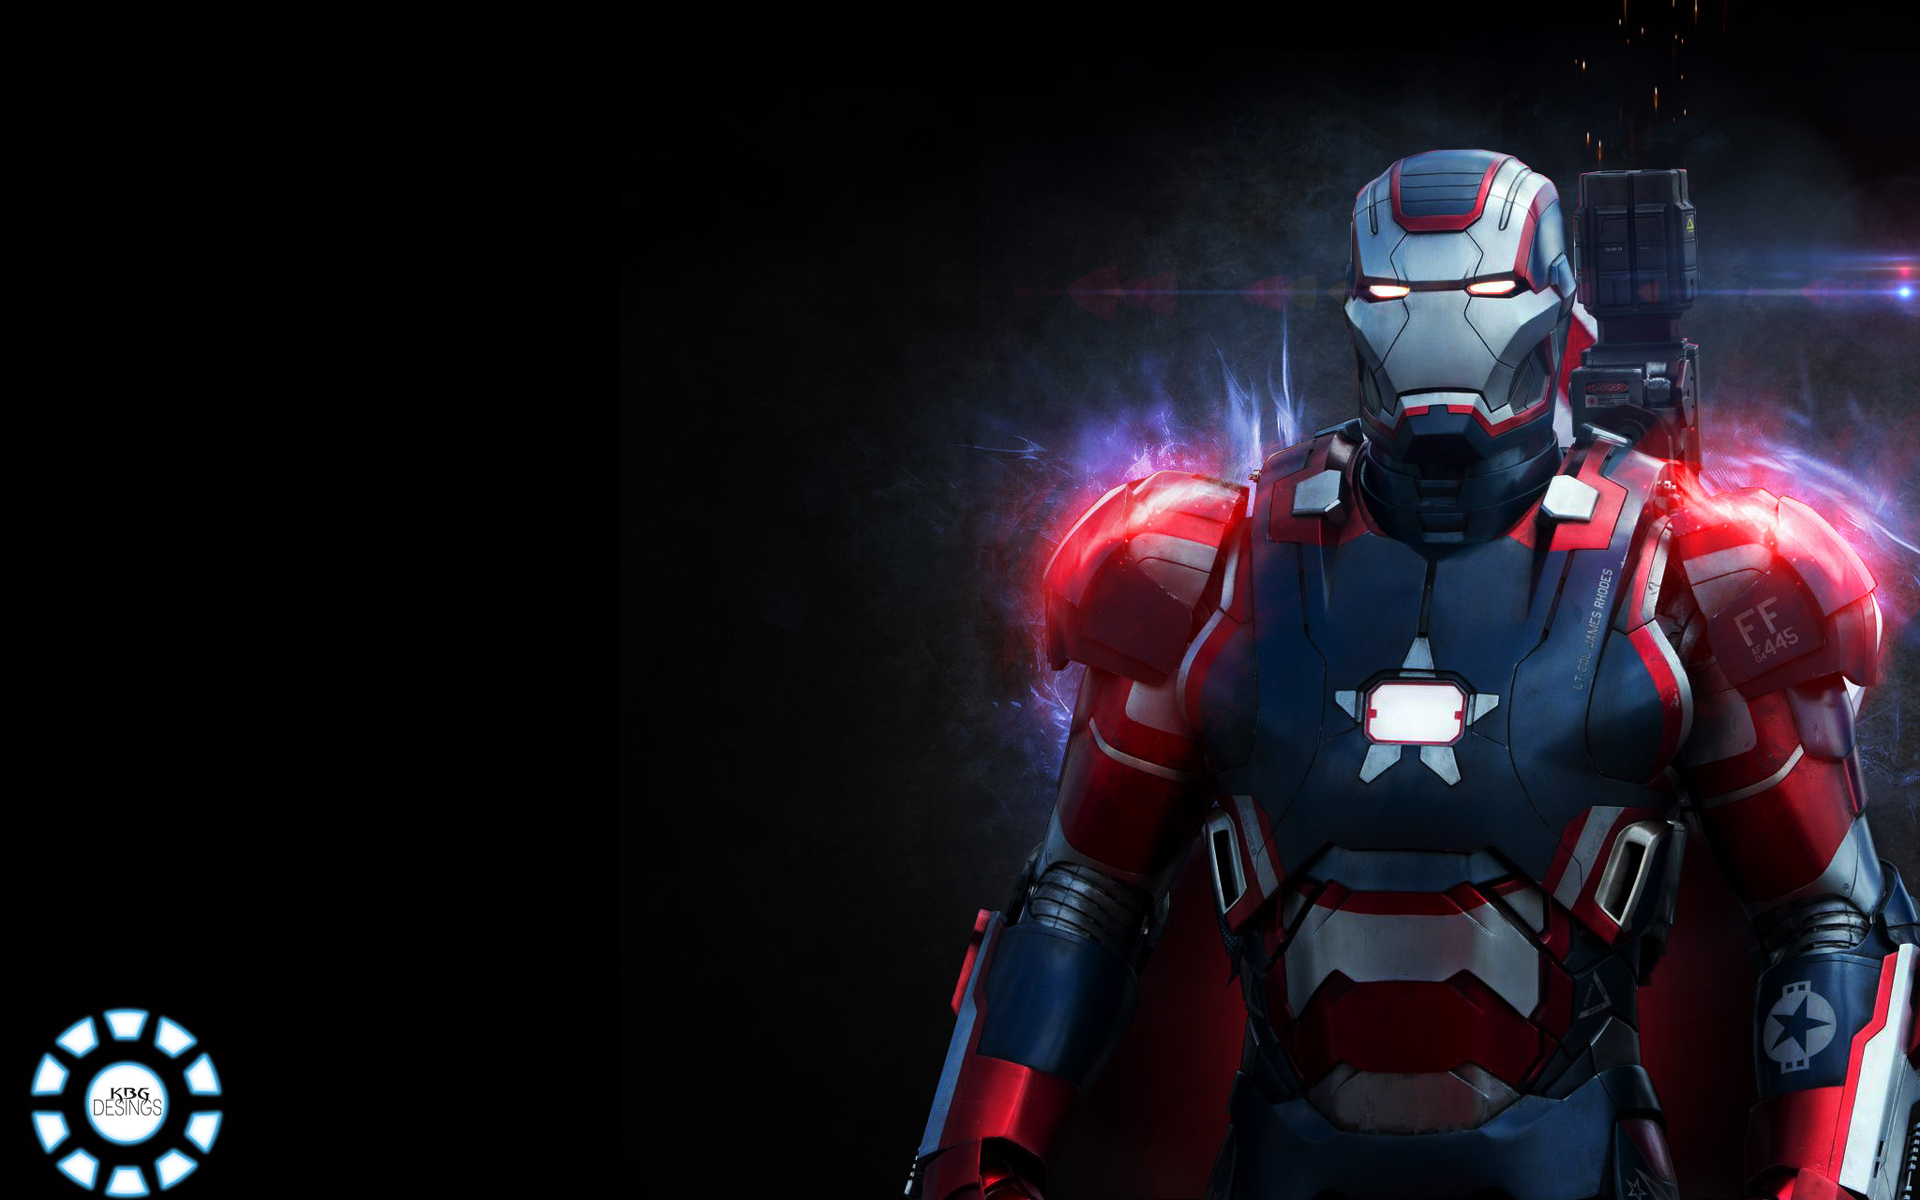 Free download Iron Man 3 Exclusive HD Wallpapers 2322